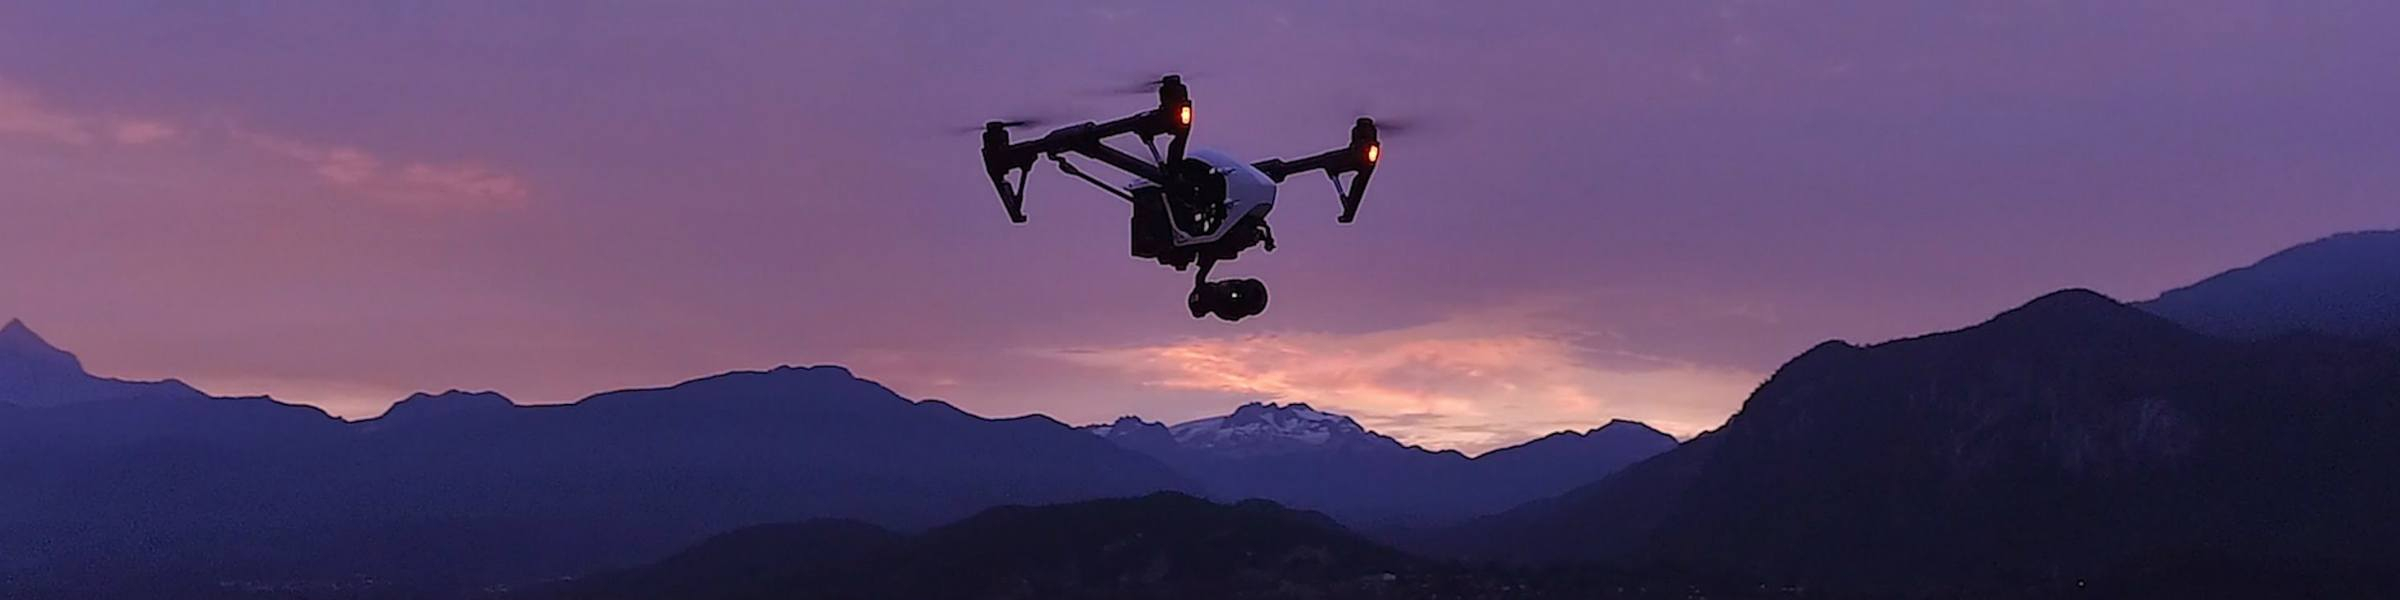 DJI-Inspire-Inspire2-Drone-Major-Consultancy-Services-Solutions-Hub